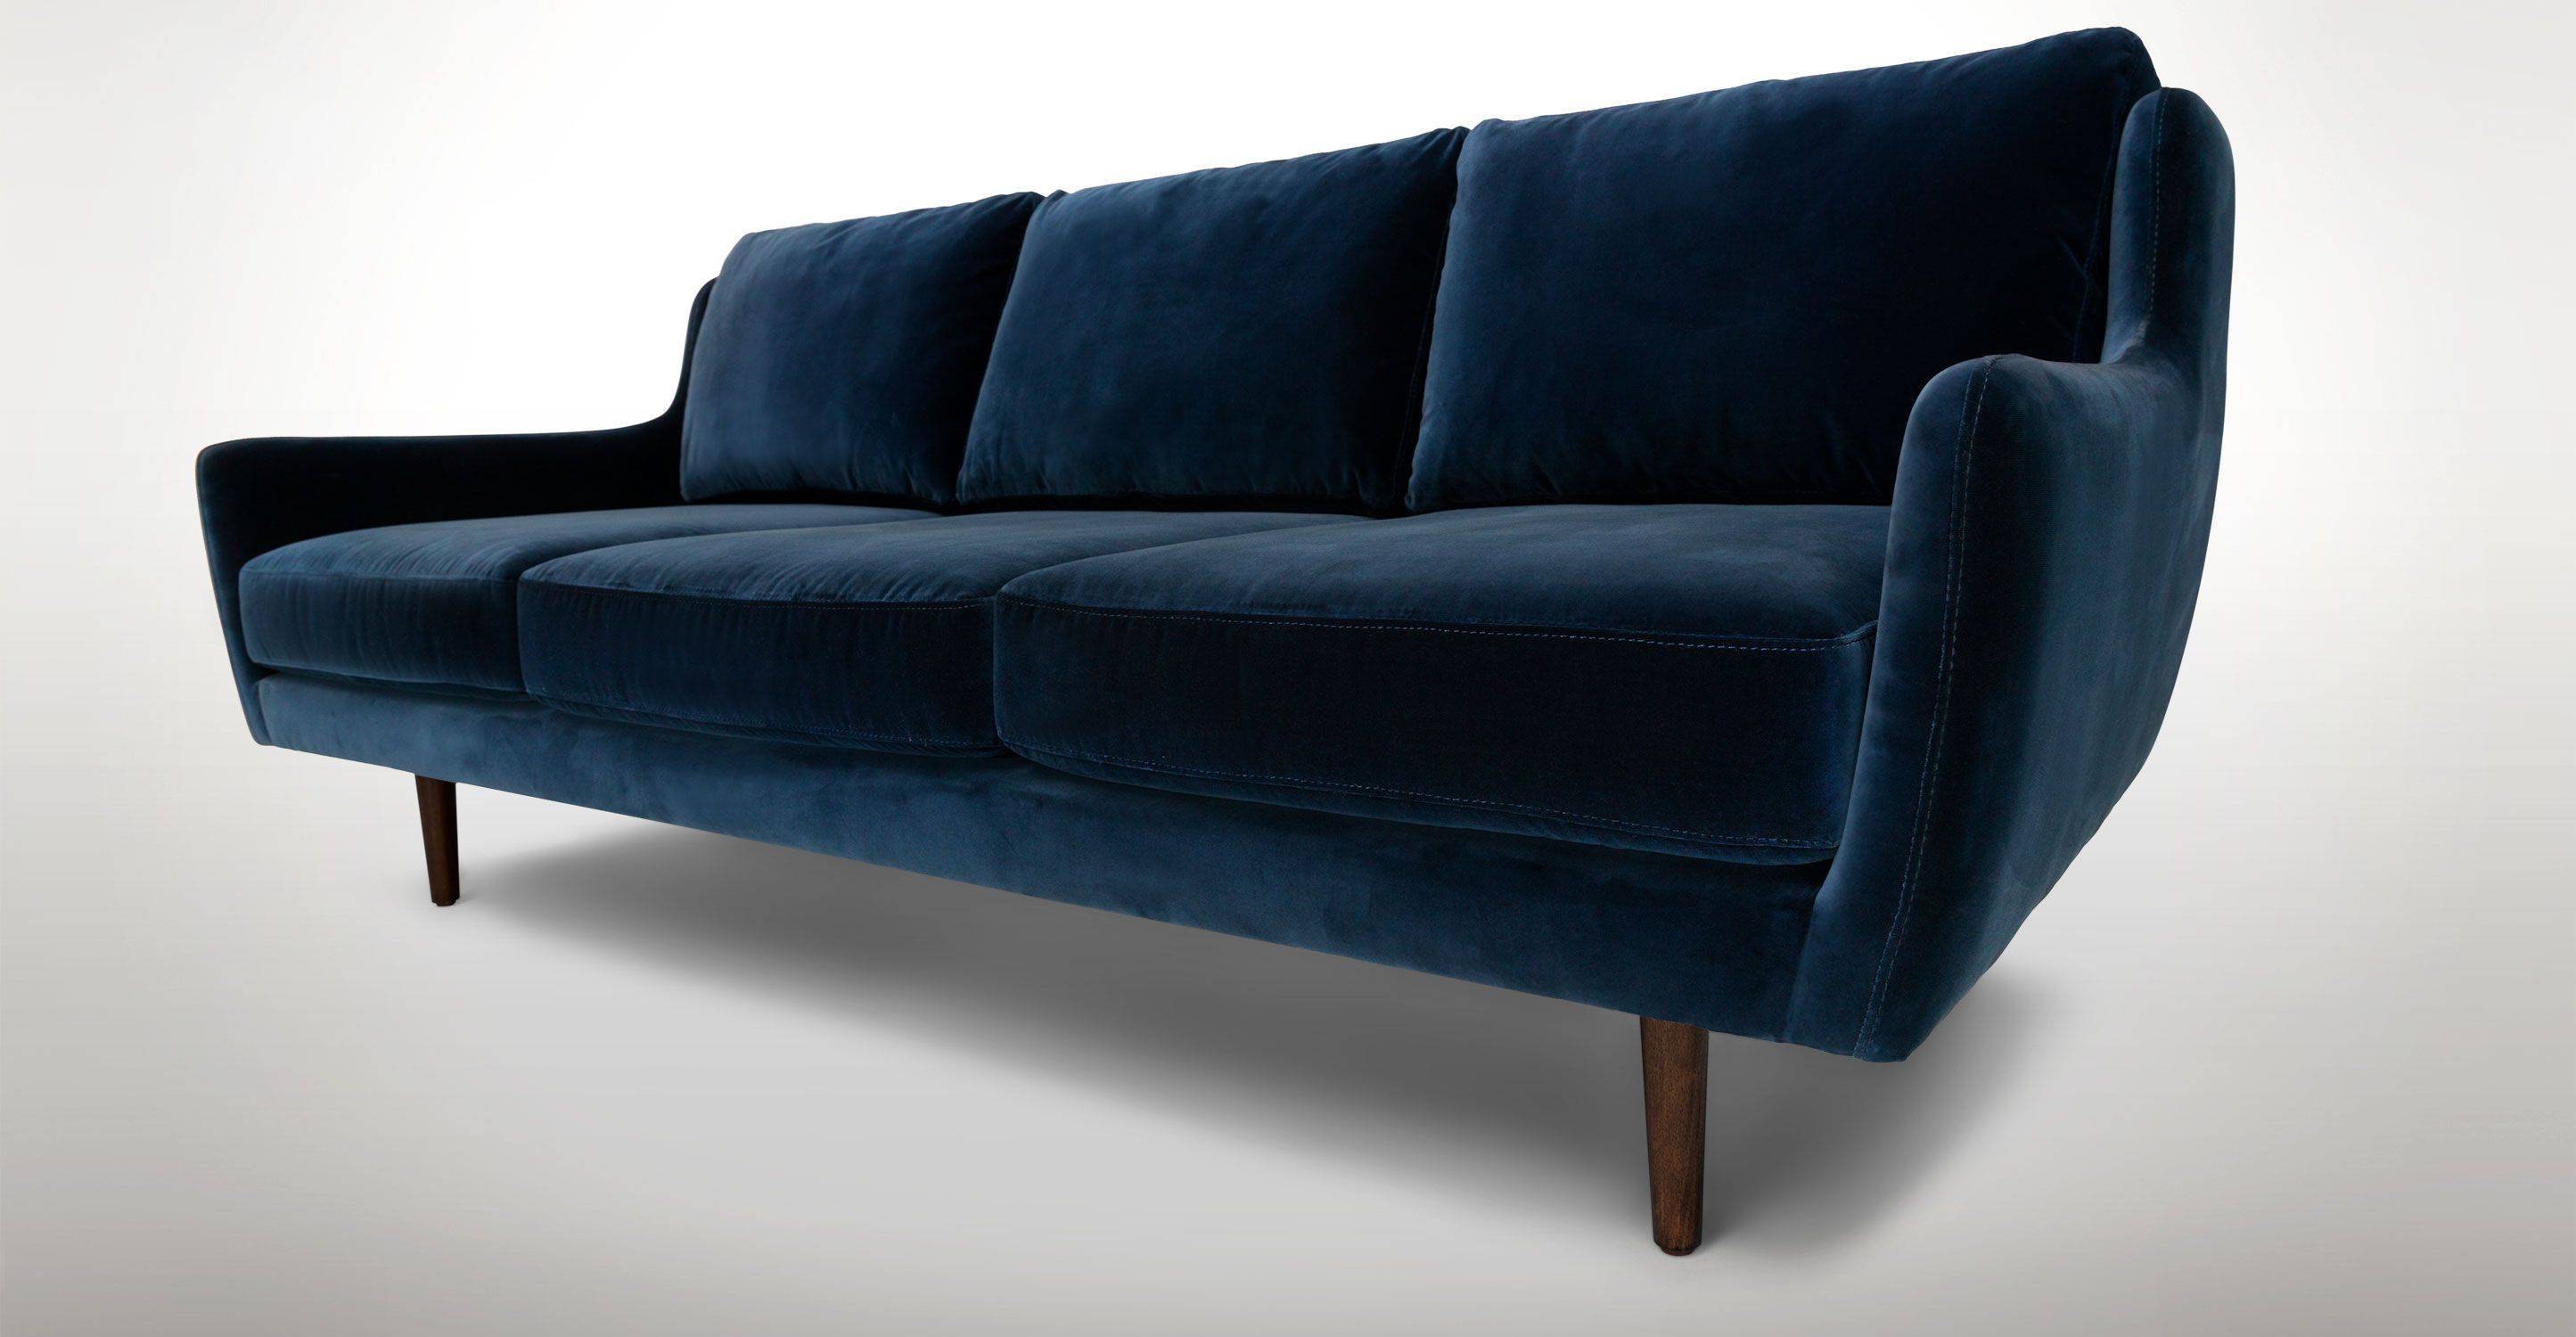 sleepernavy size and sectionals design outstanding blue blueather salenavy picture sofas loveseatsnavy loveseat pictures of full for sofa sleeper sale leather navy awesome center inspirations sectional